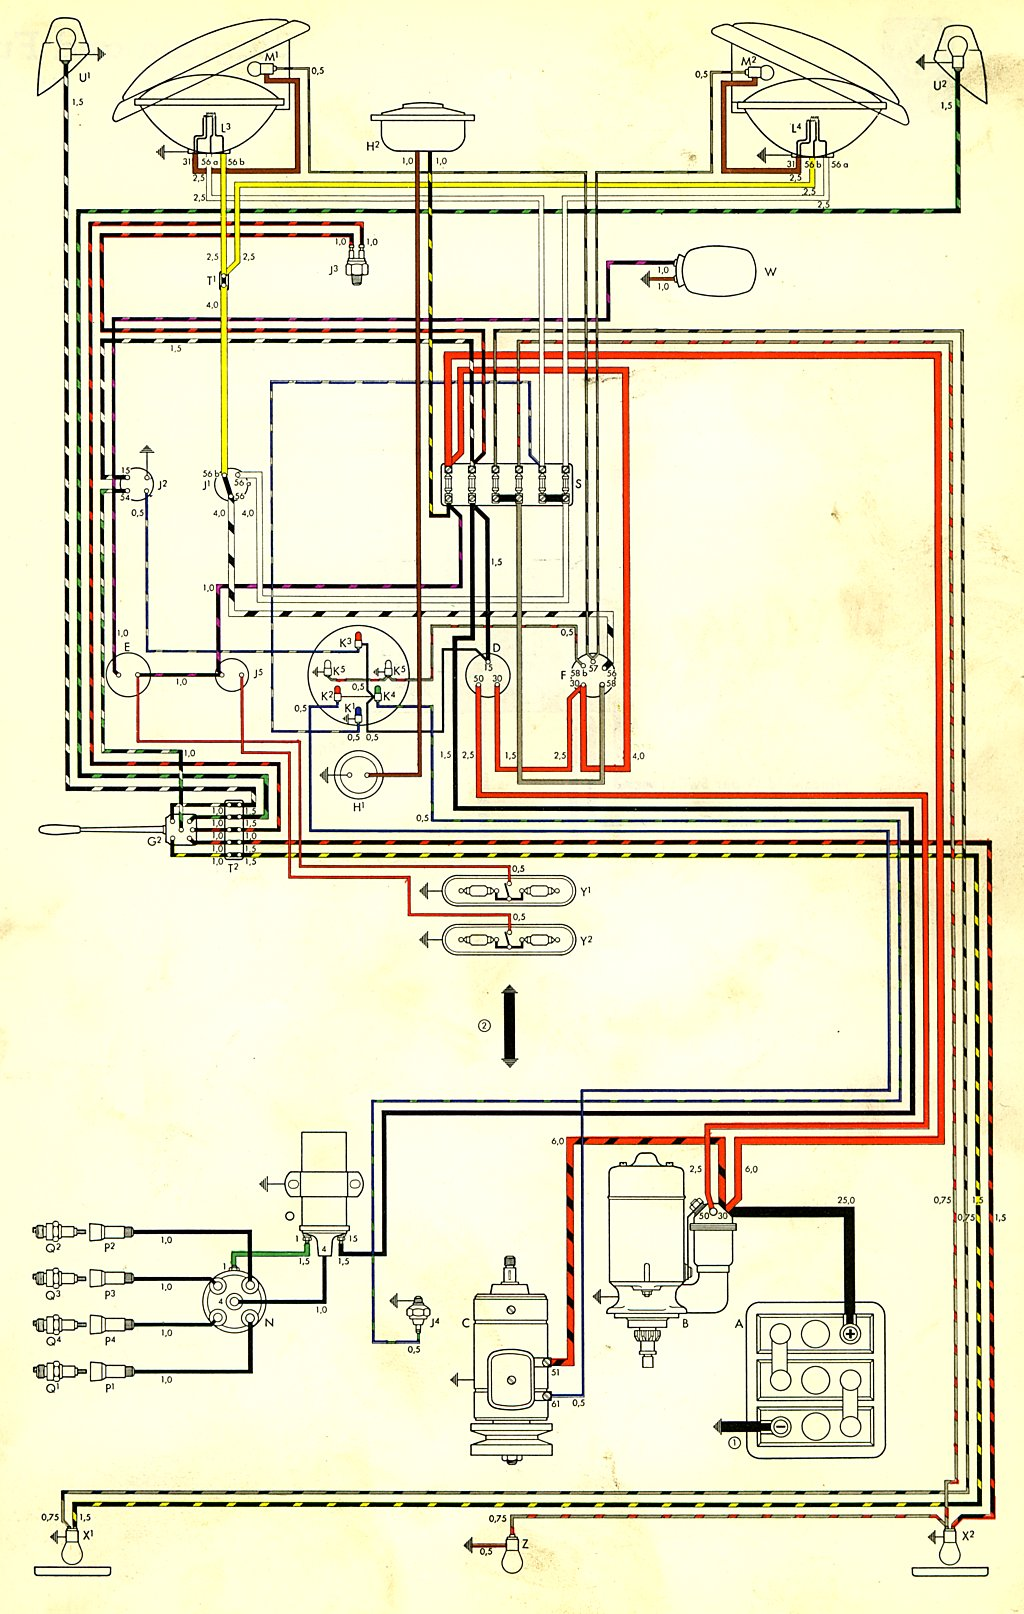 hight resolution of thesamba com type 2 wiring diagrams 1974 vw bus alternator wiring